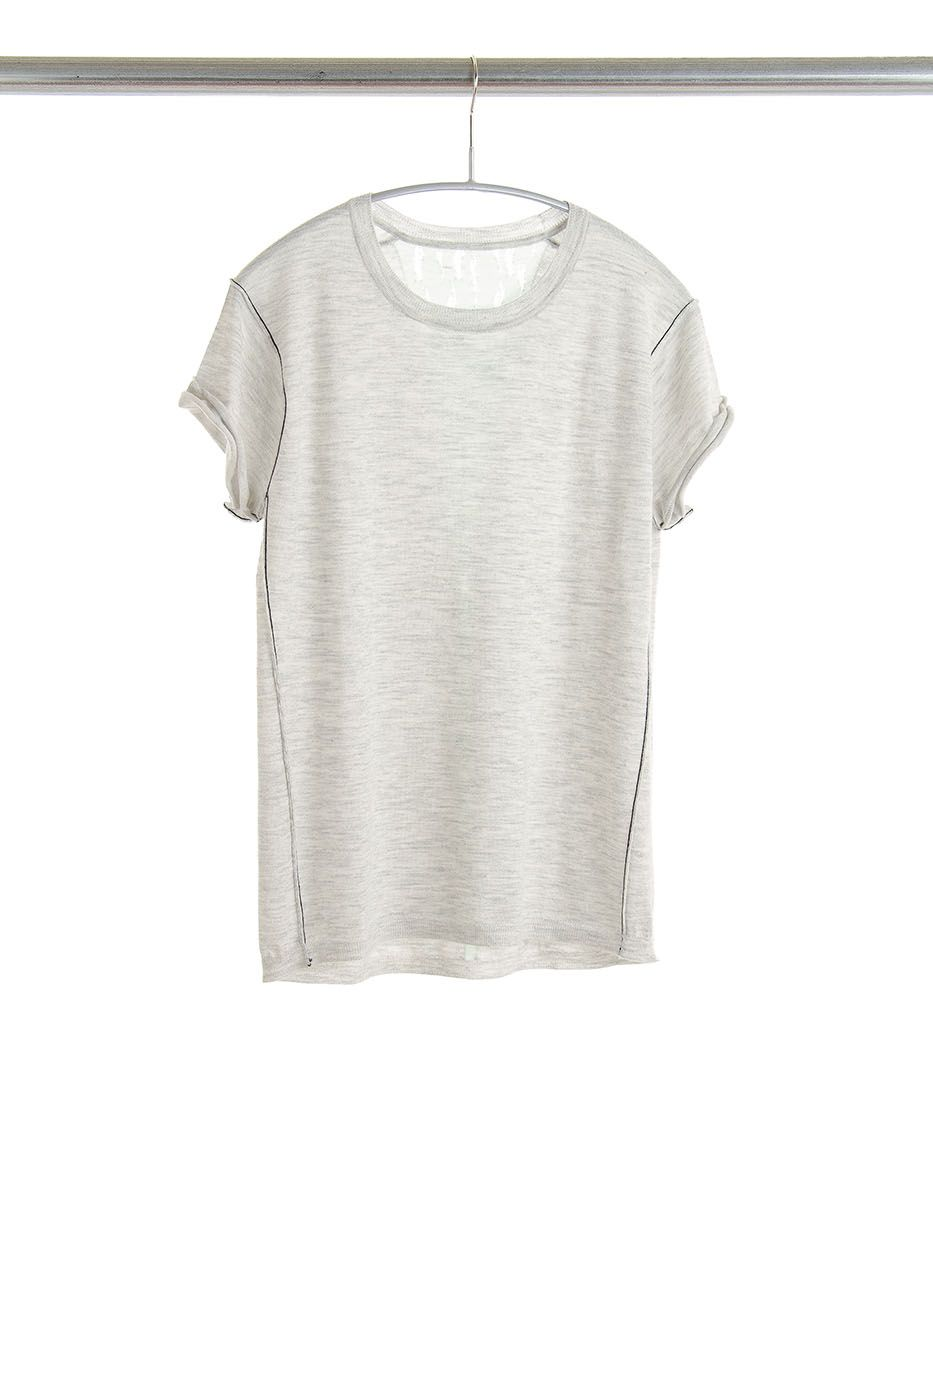 S96 Baby Tee, Dove Grey, 100% Fine Worsted Mongolian Cashmere | Paychi Guh